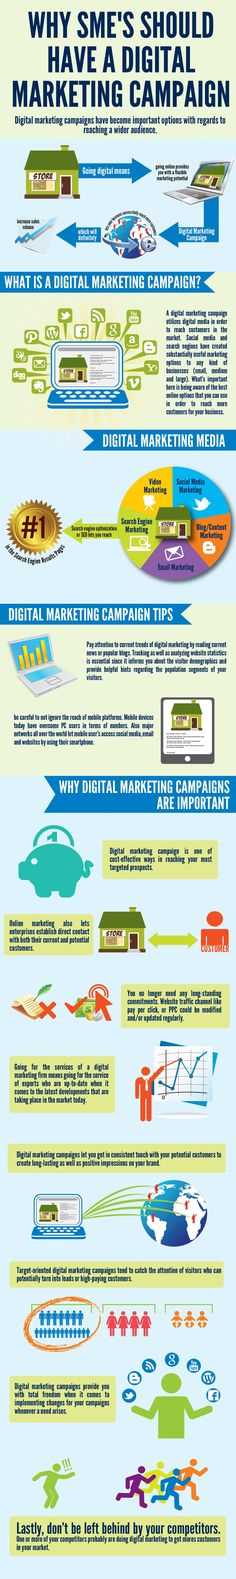 Digital marketing campaigns have become important options with regards to reaching a wider audience. Going digital means going online and, as such, provides you with a flexible marketing potential. Digital Marketing Strategy, Marketing Plan, Internet Marketing, Social Media Marketing, Online Marketing, Content Marketing, Digital Marketing Trends, Marketing Articles, Marketing Dashboard